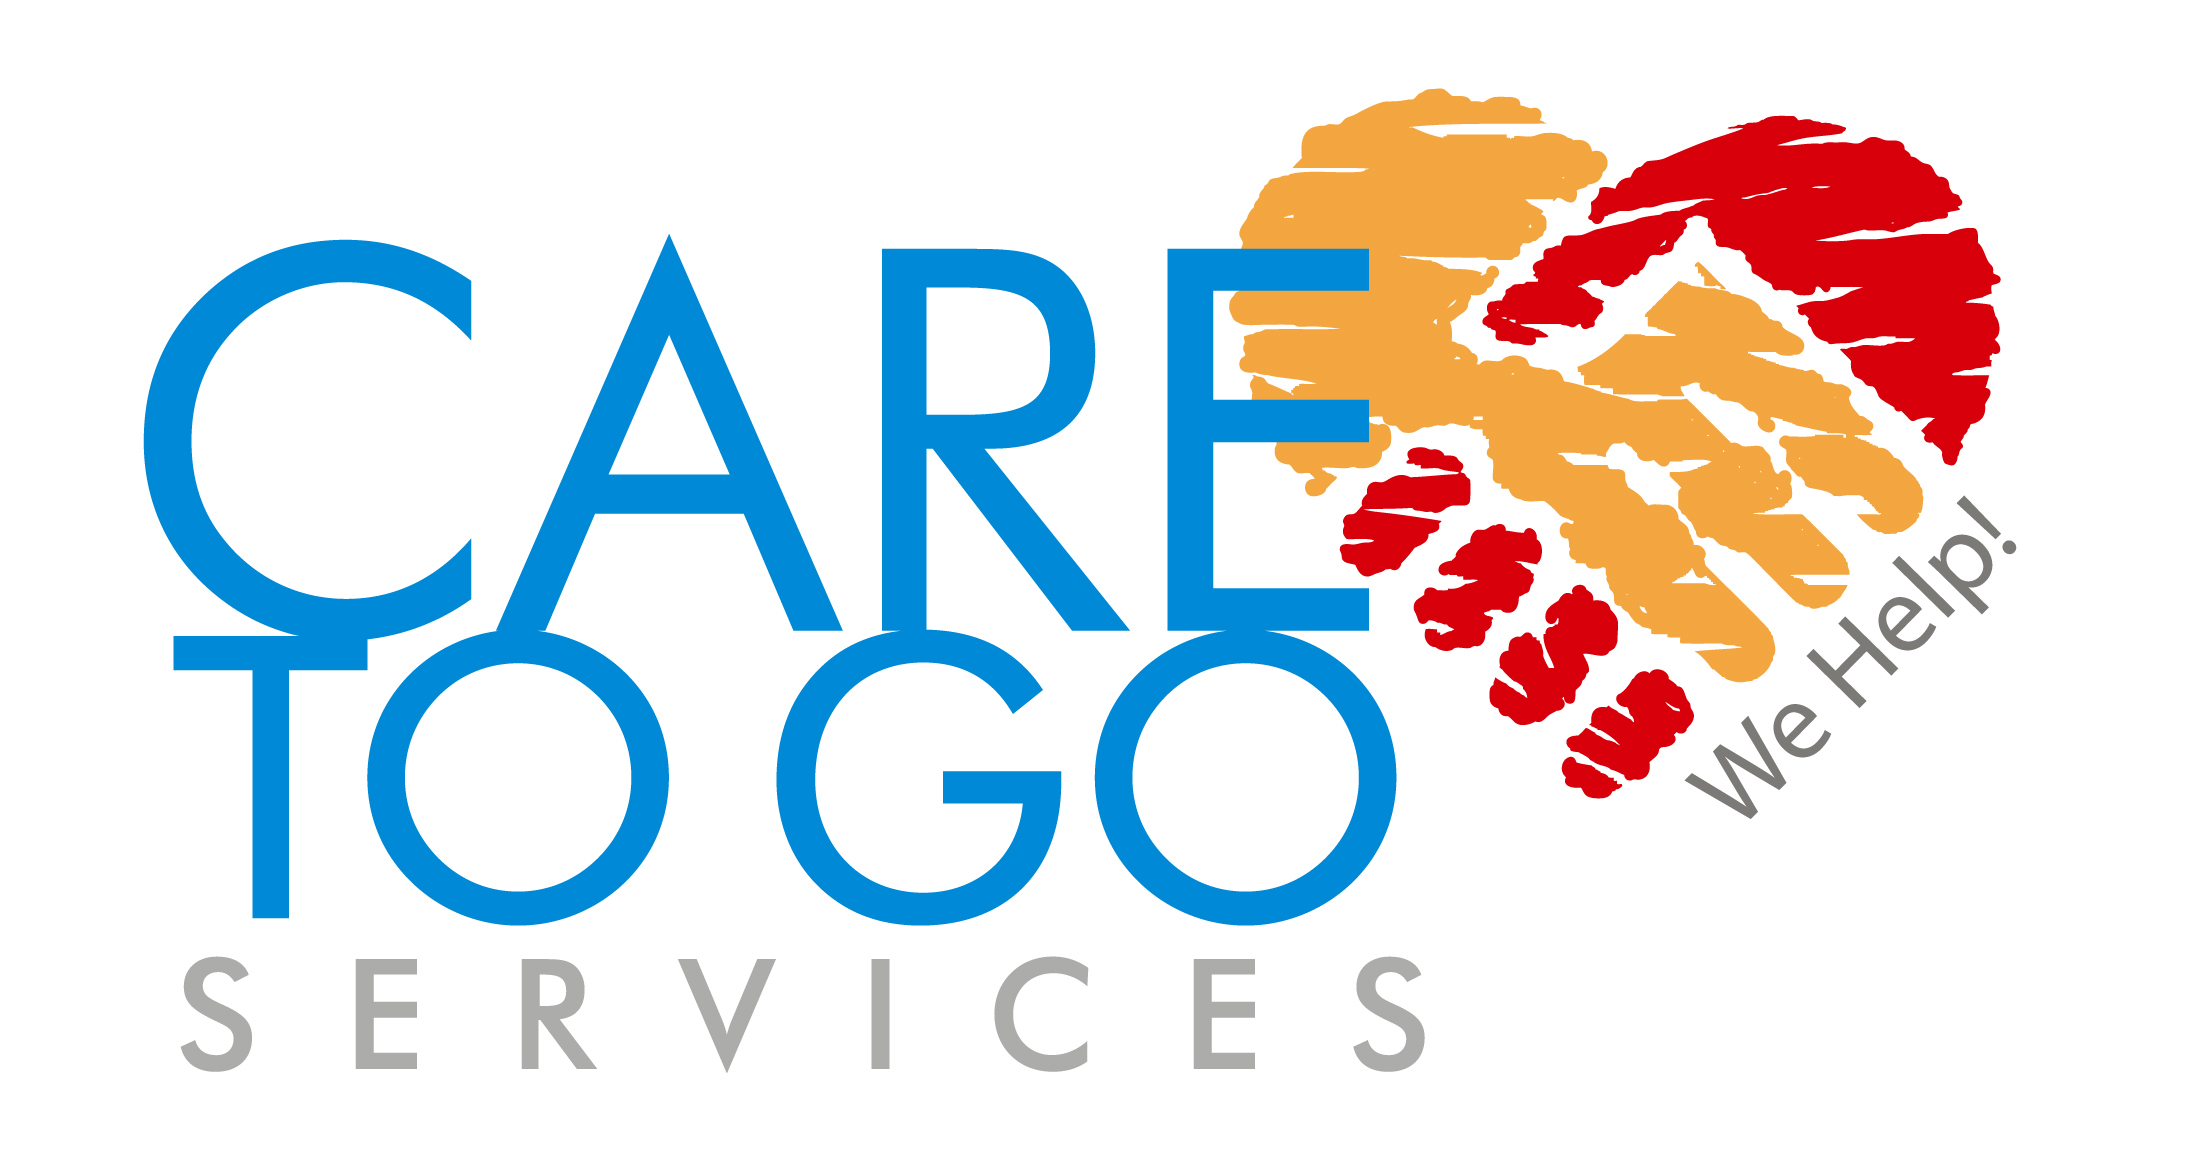 Logo Design by moidgreat - Entry No. 158 in the Logo Design Contest Care To Go Services.